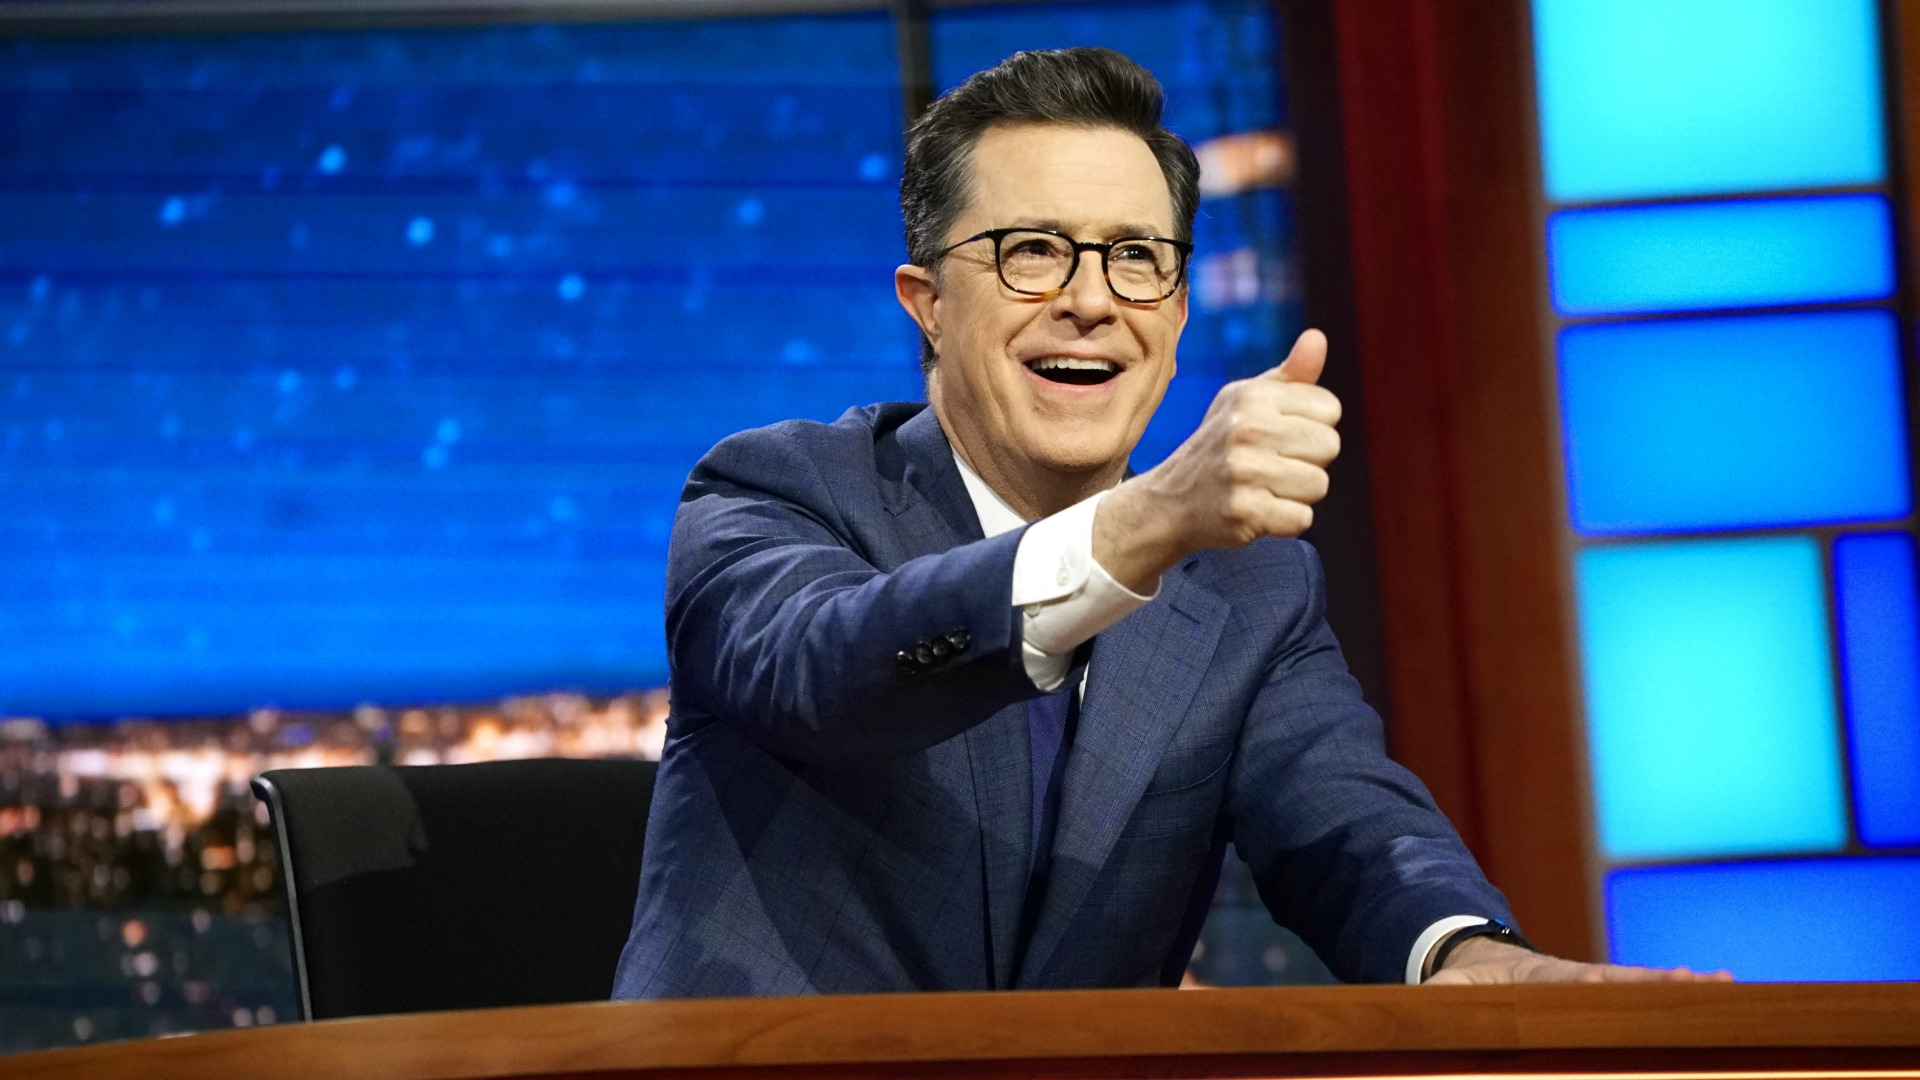 Stephen Colbert from The Late Show